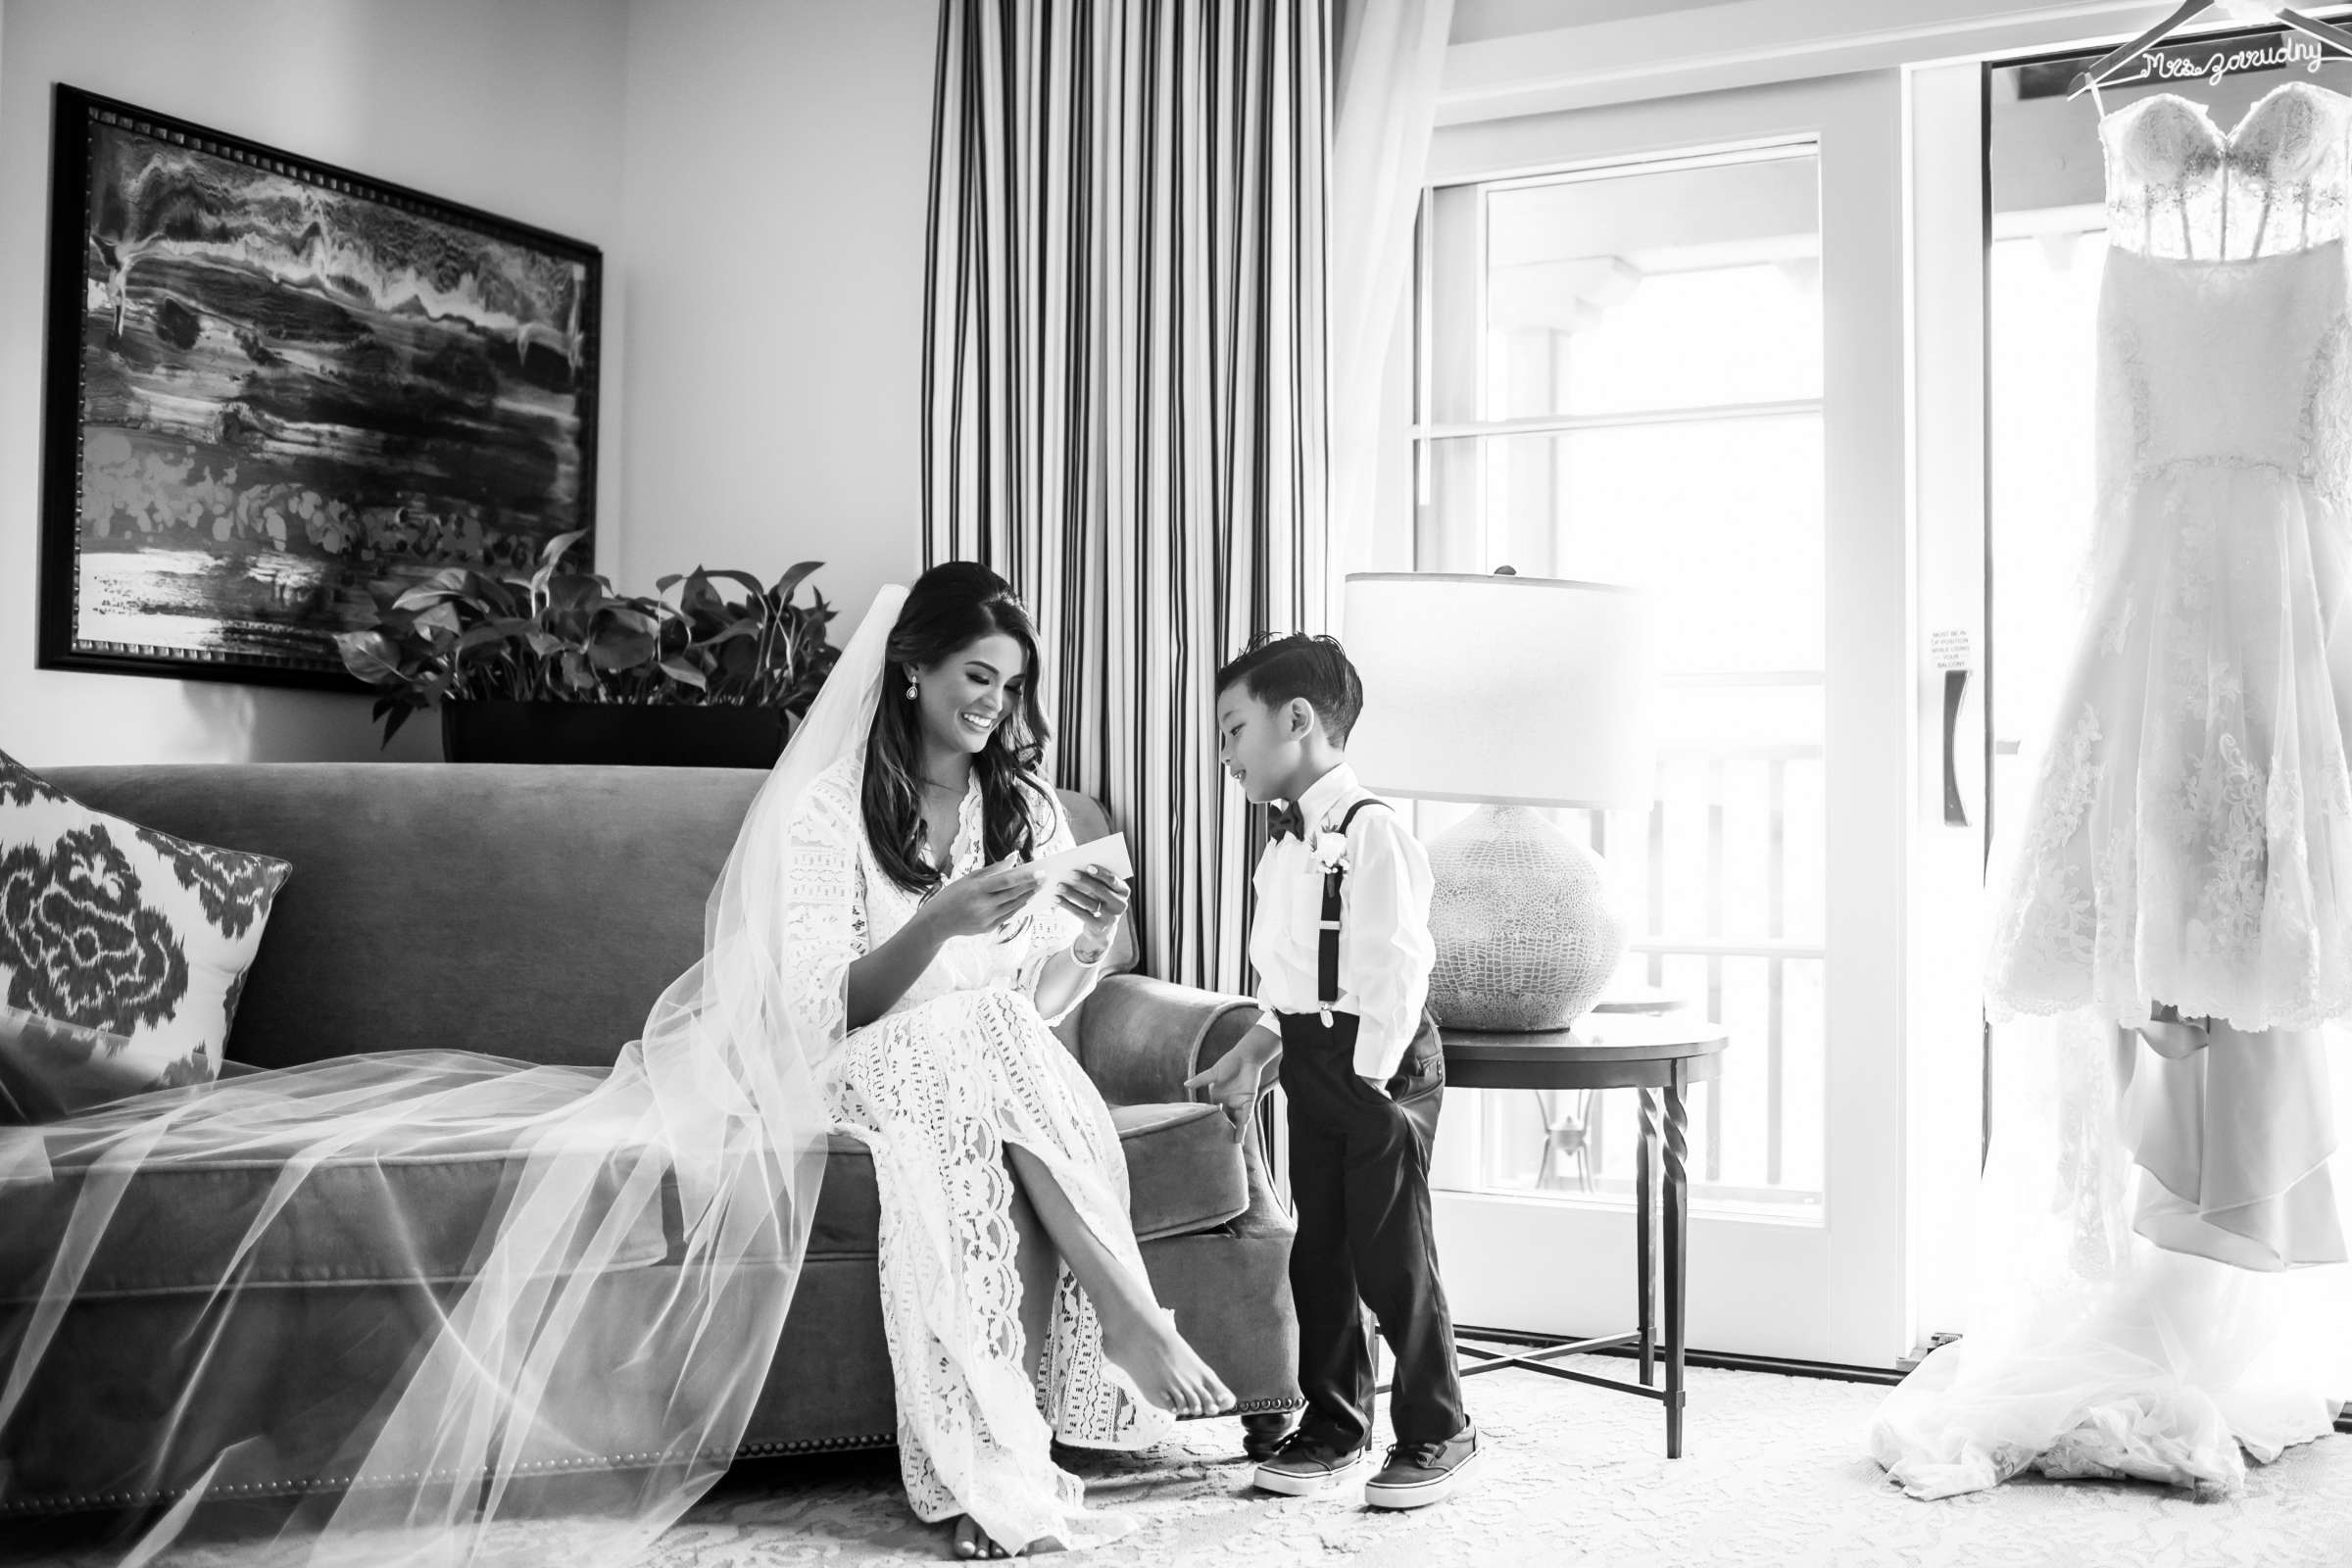 Scripps Seaside Forum Wedding coordinated by Lavish Weddings, Cindy and Justin Wedding Photo #381792 by True Photography